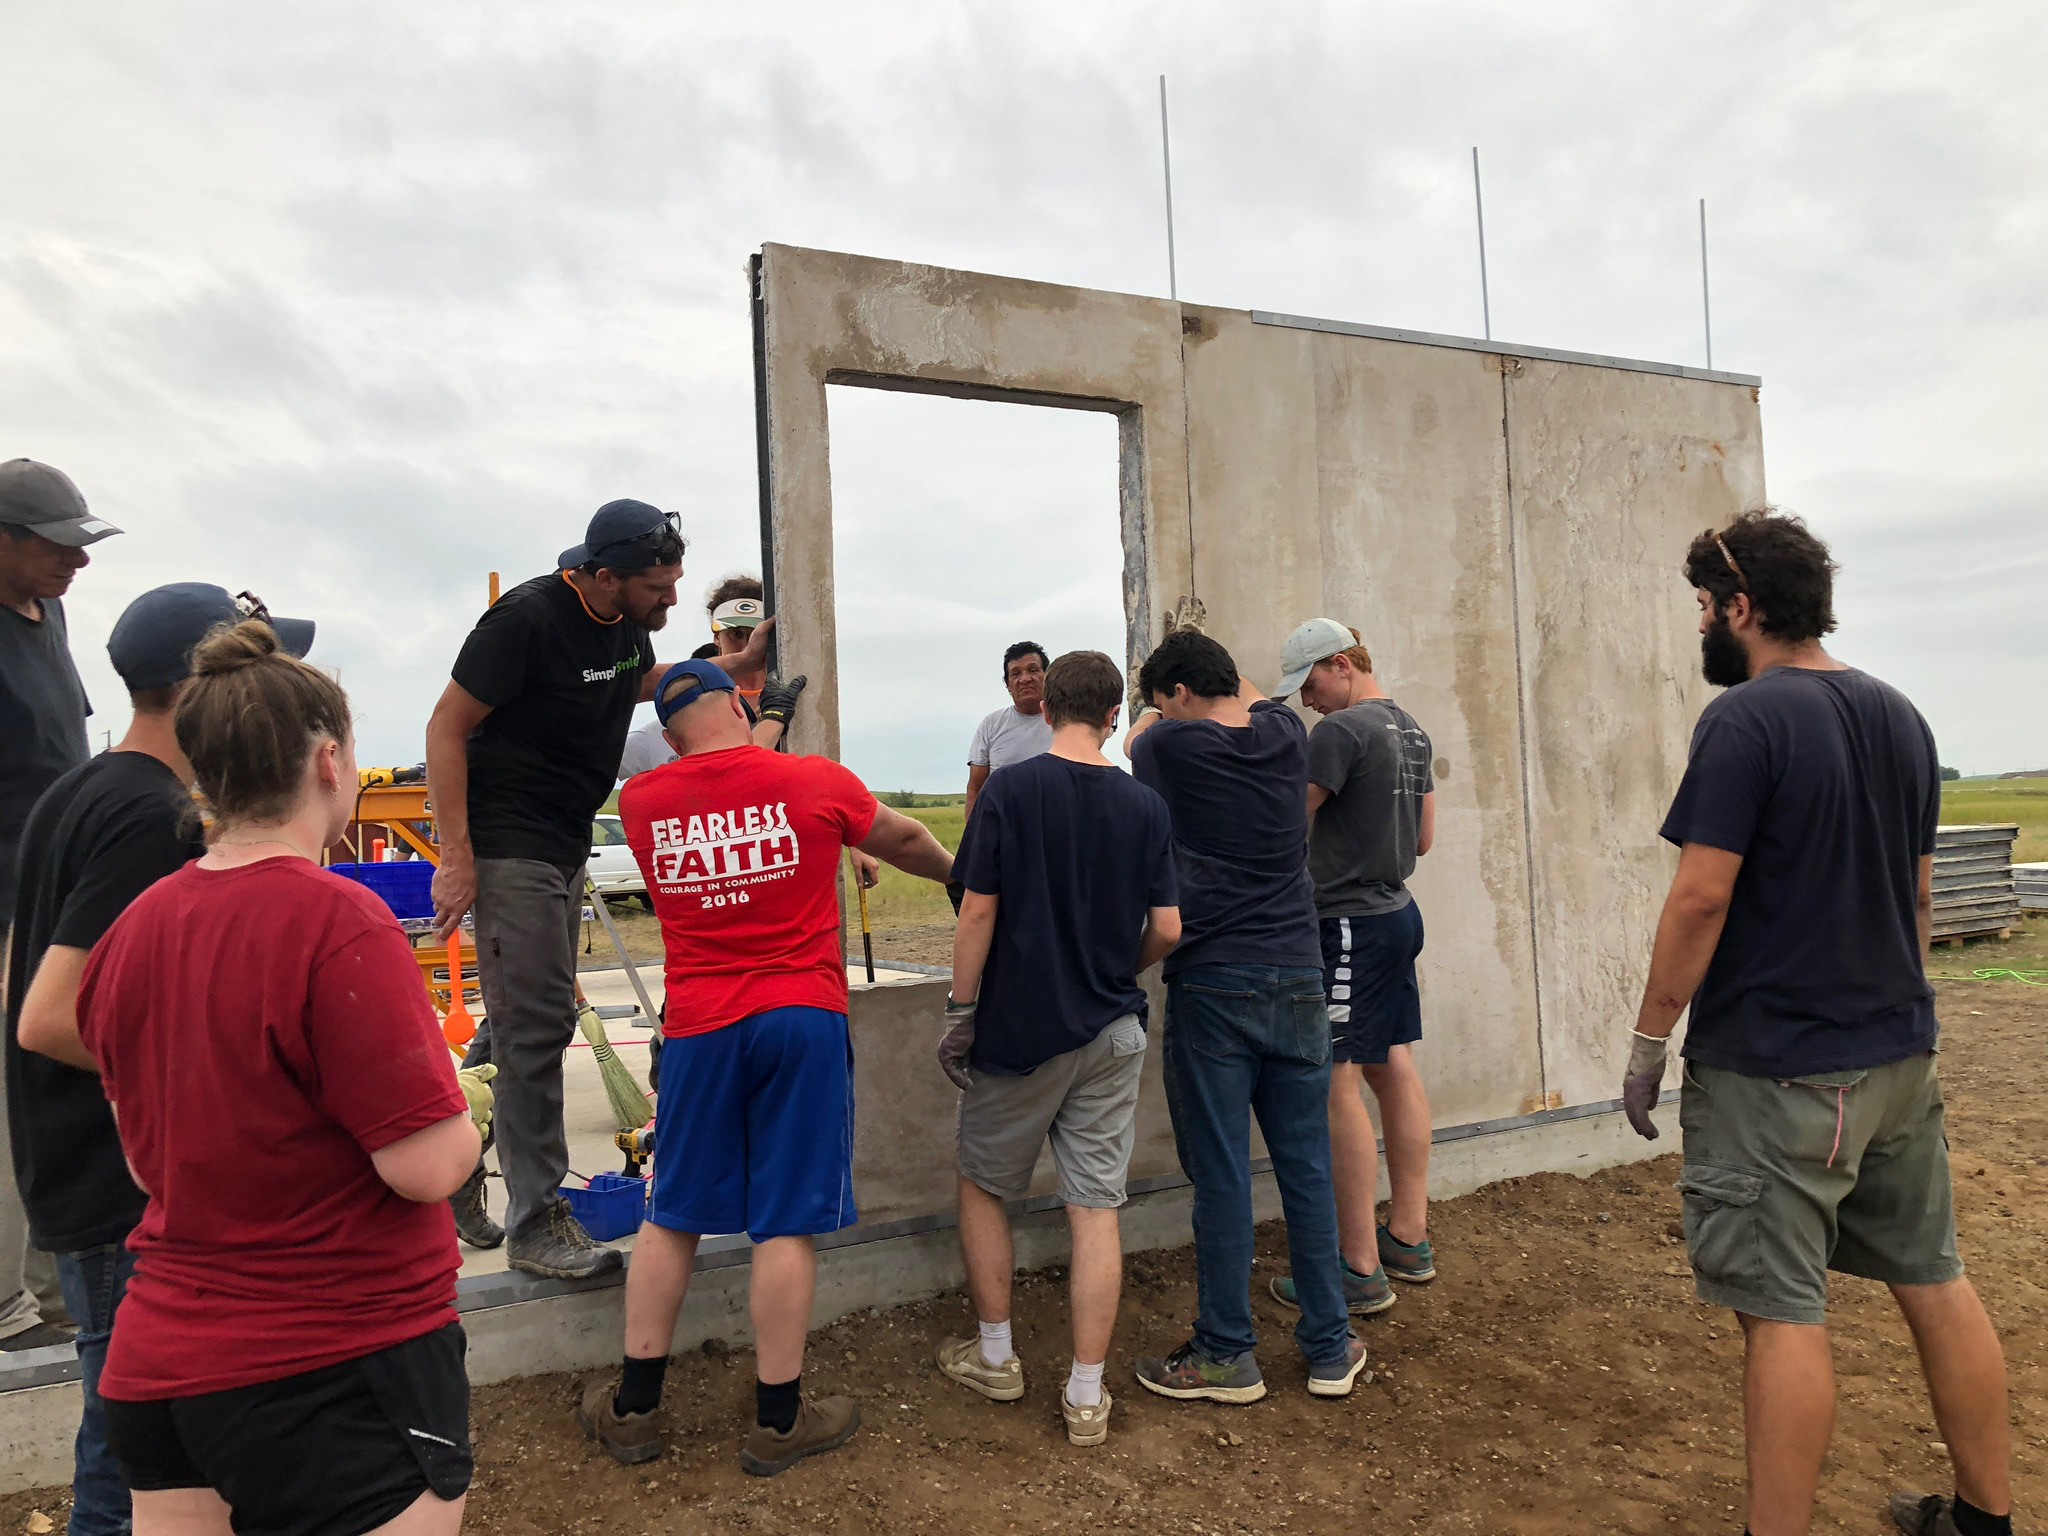 8/2/19: With the help of Simply Smiles volunteers and local community partners, the first exterior walls are installed!